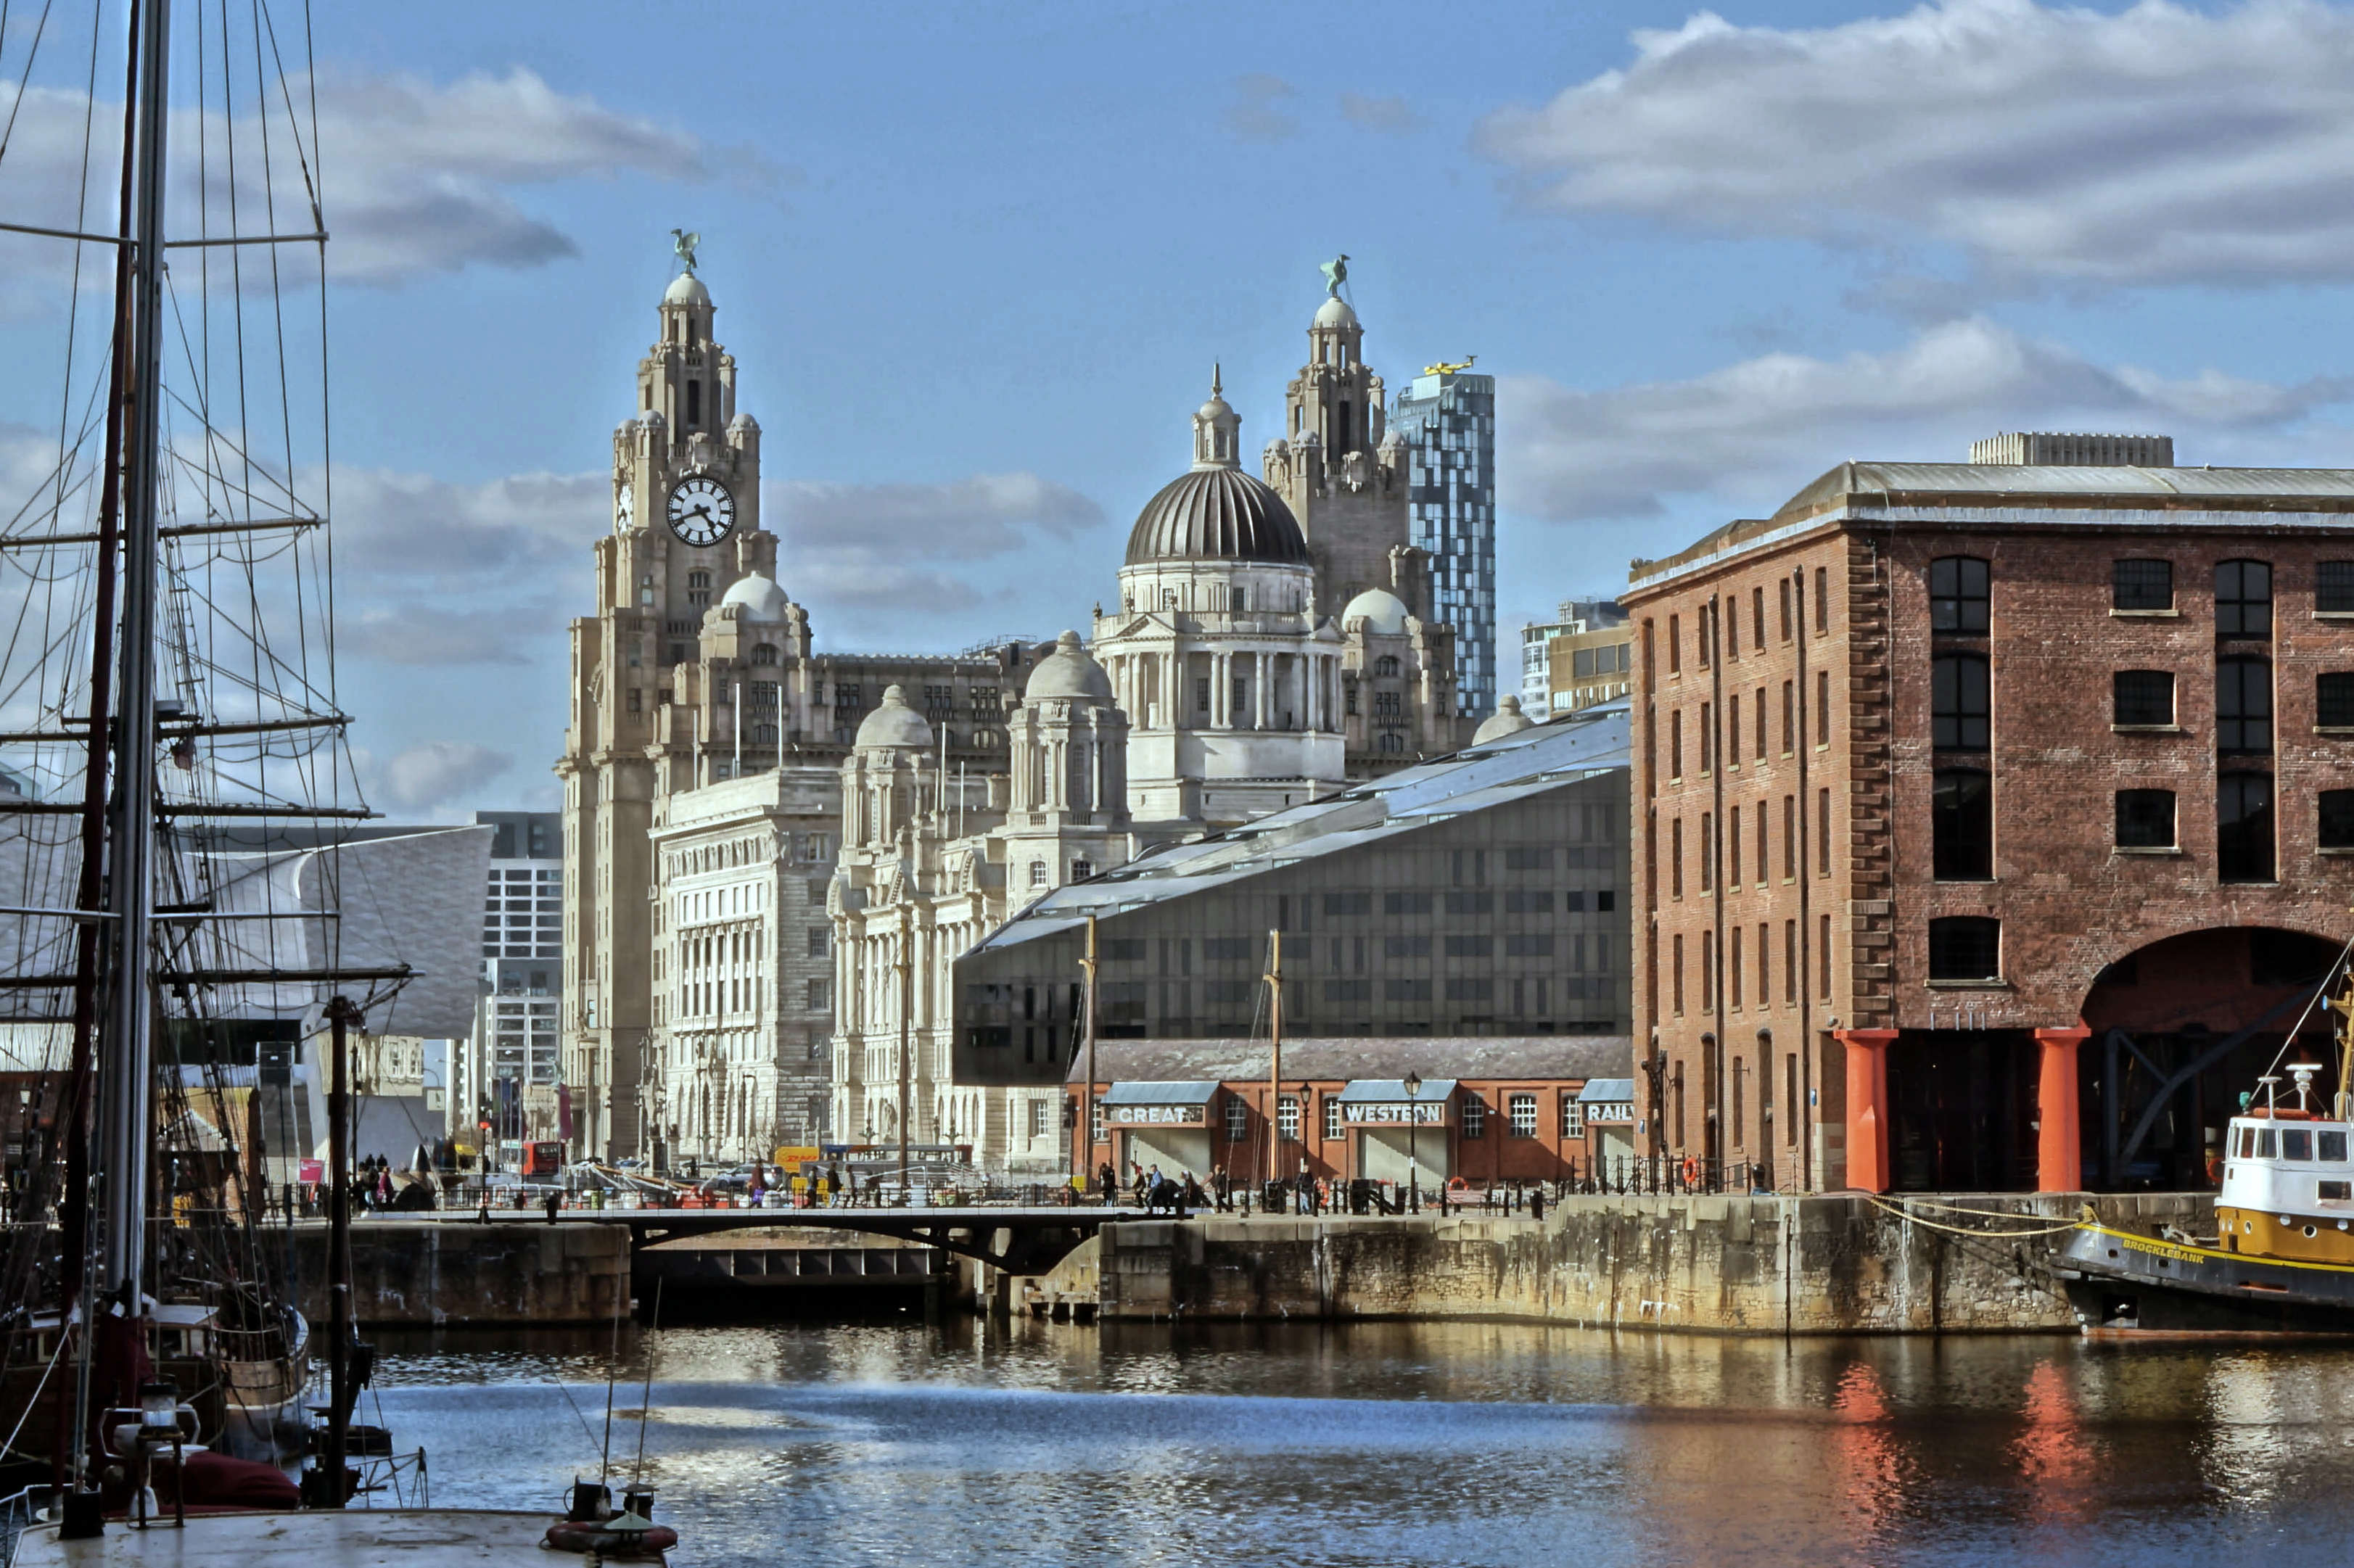 Liverpool Pier Head from ALbert Dock The Biggest Super Gonorrhoea Hotspots Have Been Revealed